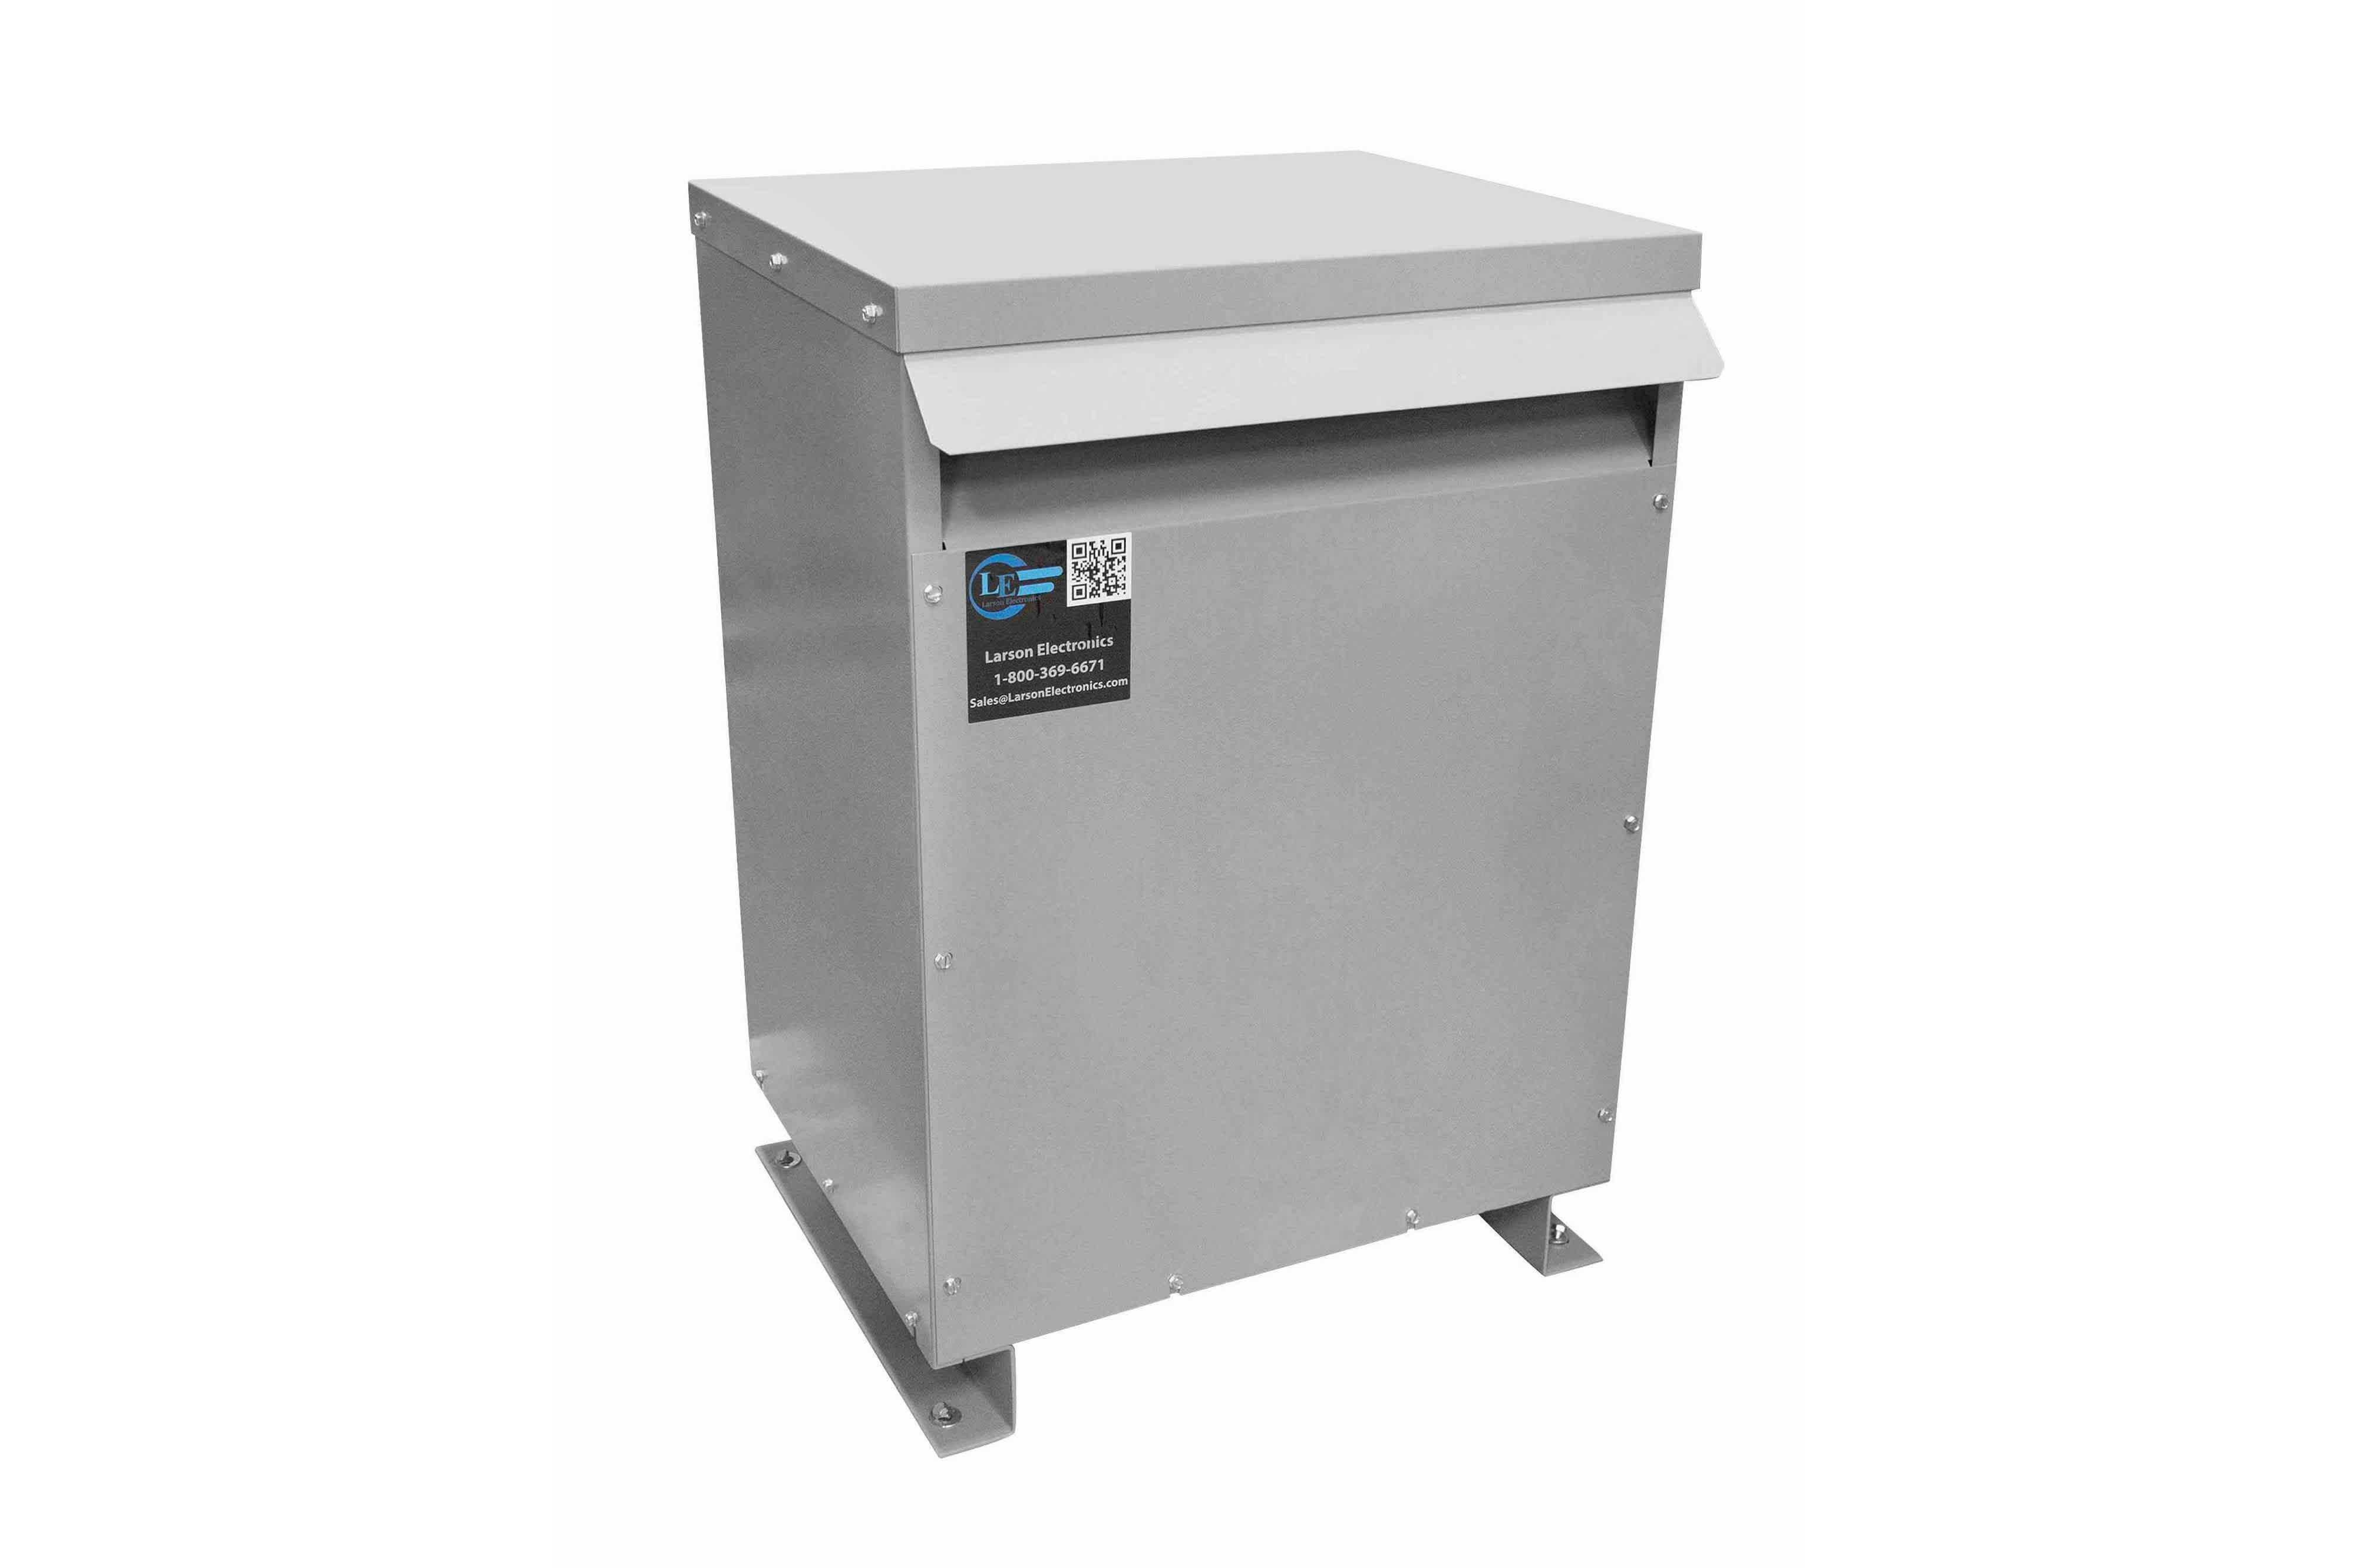 112.5 kVA 3PH Isolation Transformer, 600V Wye Primary, 208V Delta Secondary, N3R, Ventilated, 60 Hz